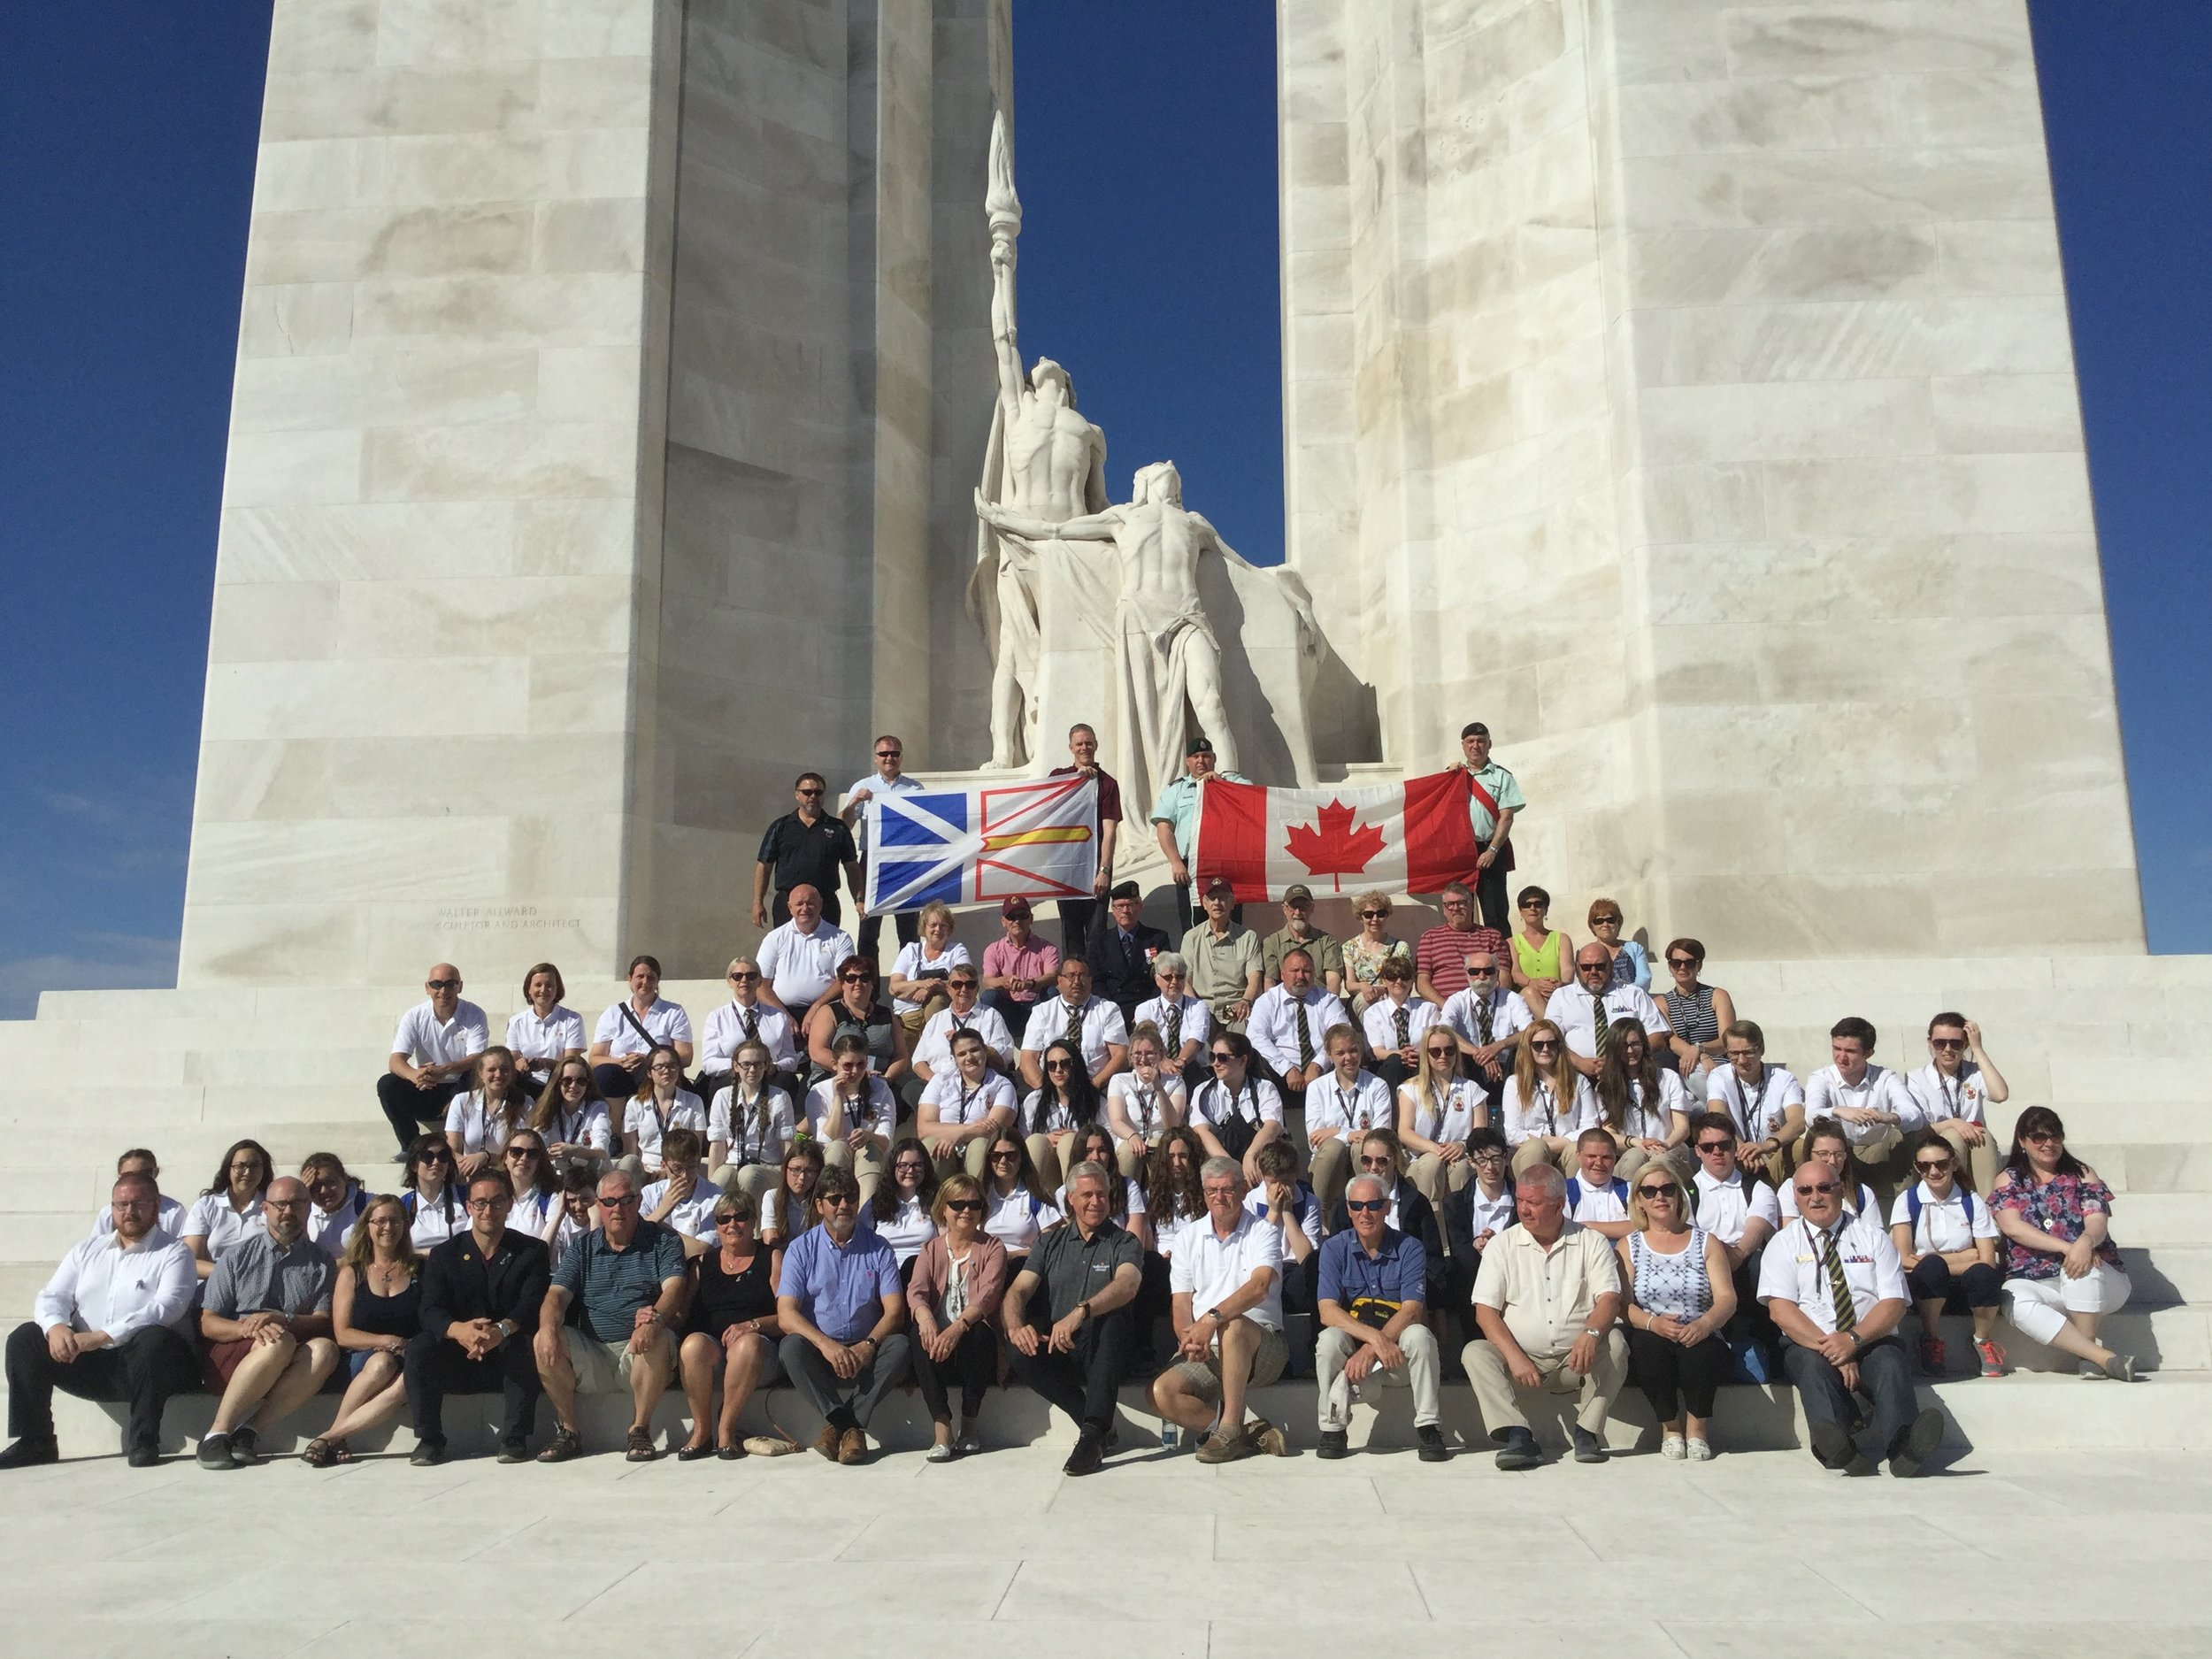 Members of the pilgrimage, including the Ambassadors, at Vimy Ridge.